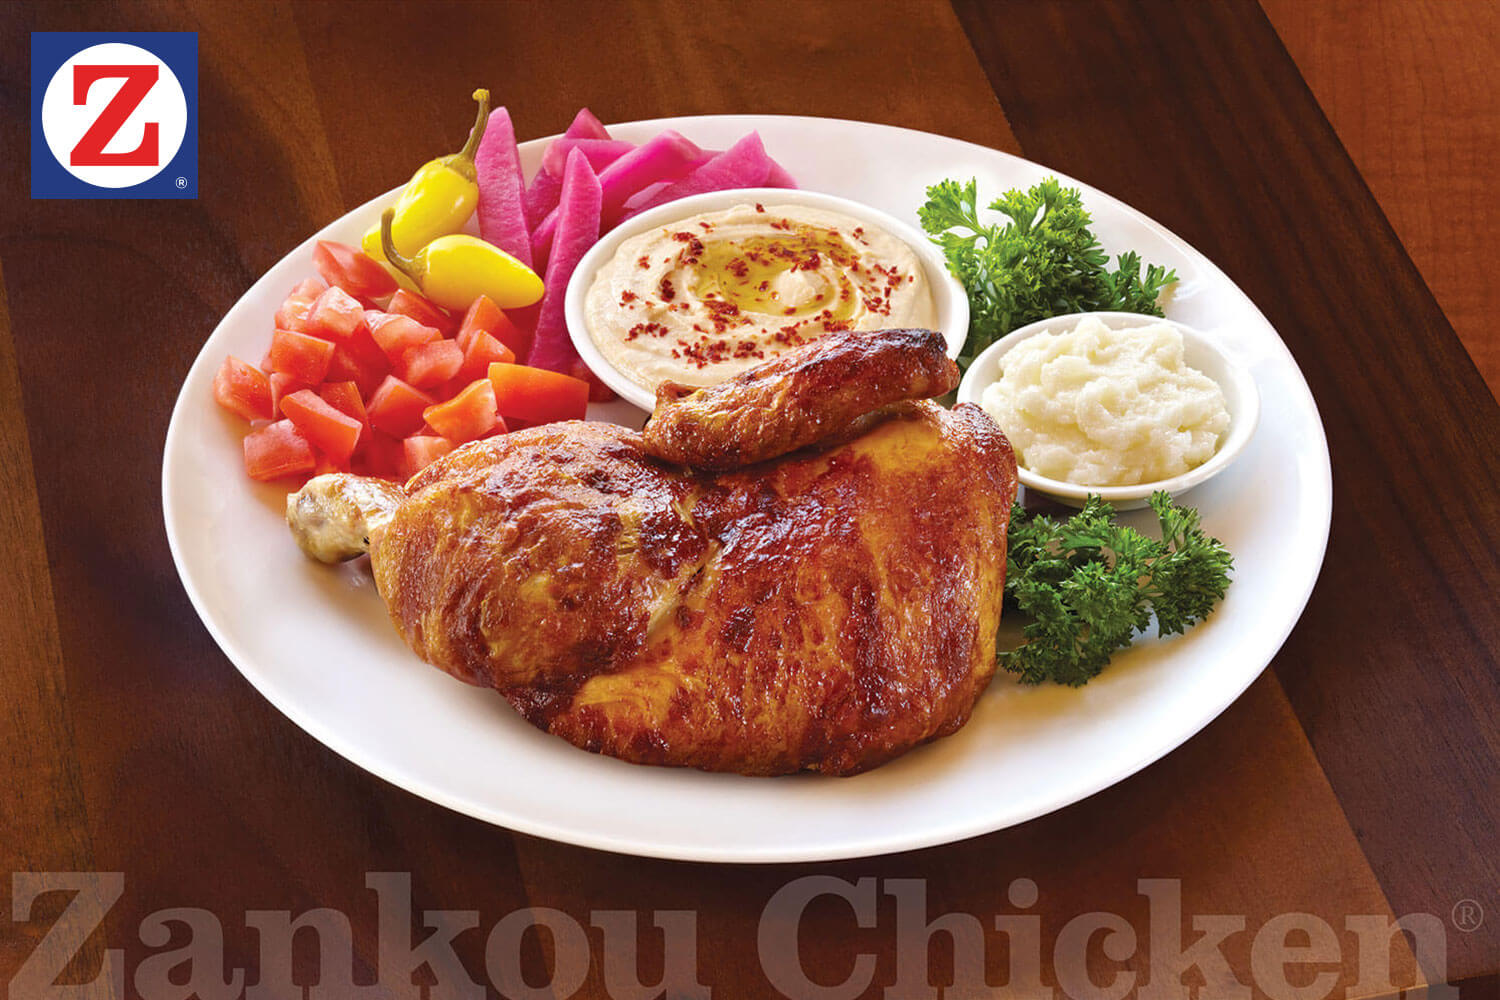 Half chicken plate with sides